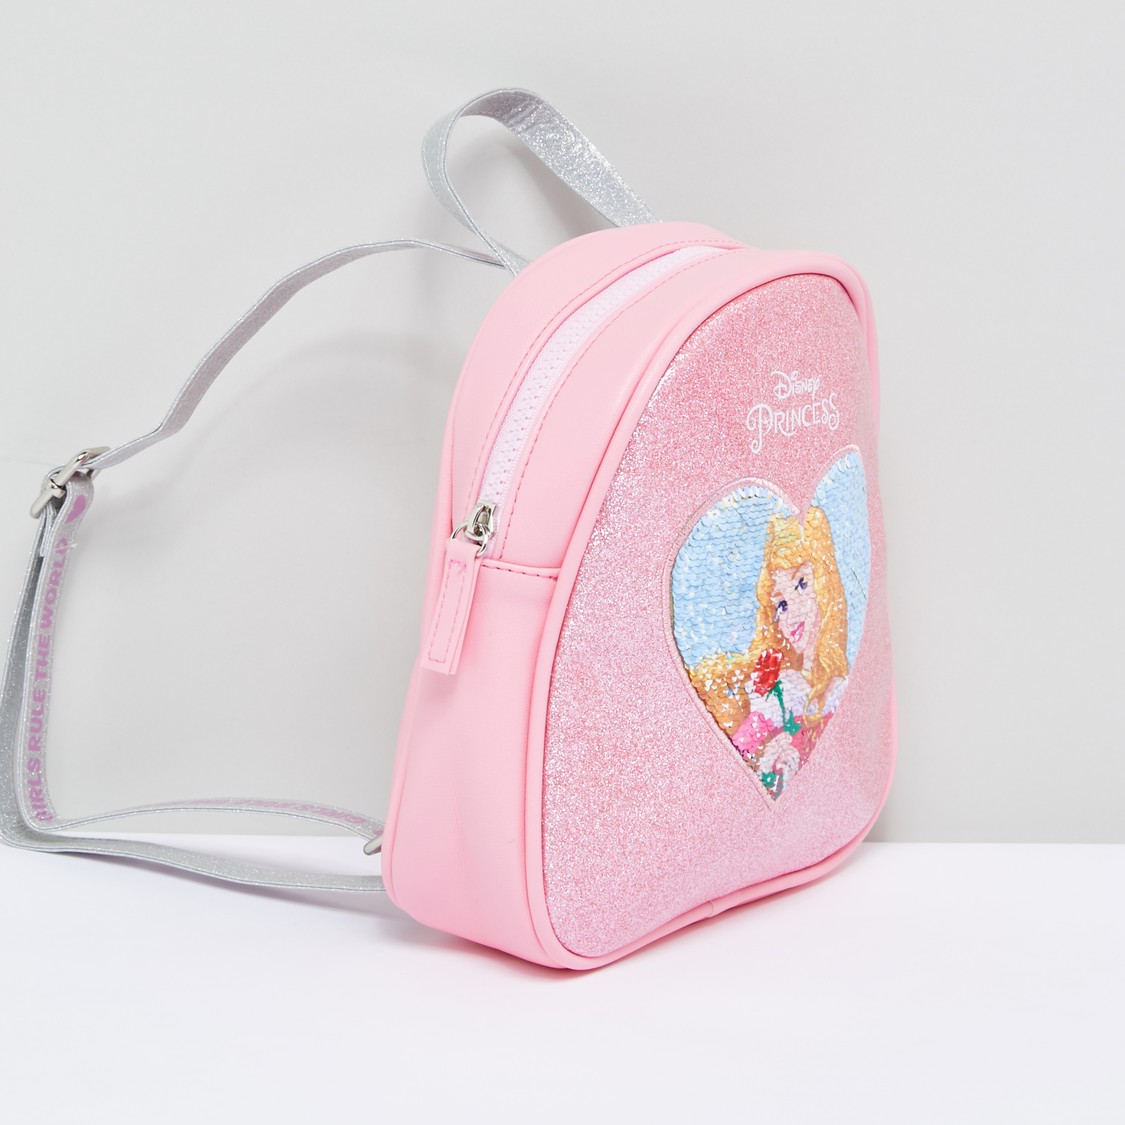 Princess Aurora Sequin Detail Glitter Backpack with Adjustable Straps